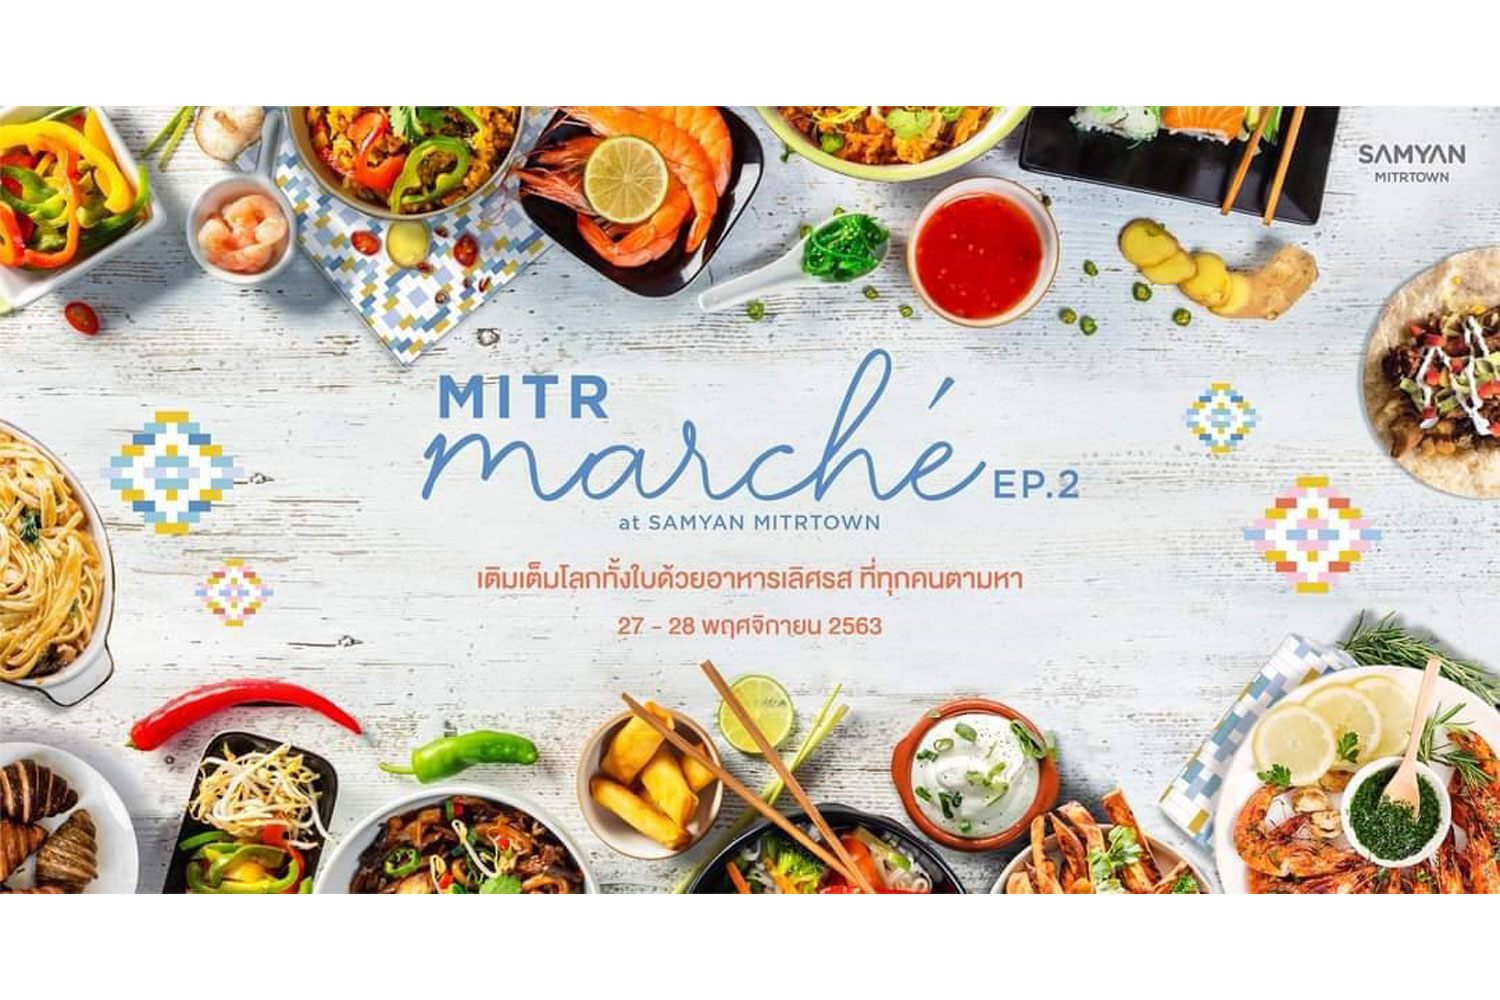 "Samyan Mitrtown invites all our friends to enjoy delicious dishes and friendship at ""MITR MARCHÉ EP.2"" food fair"